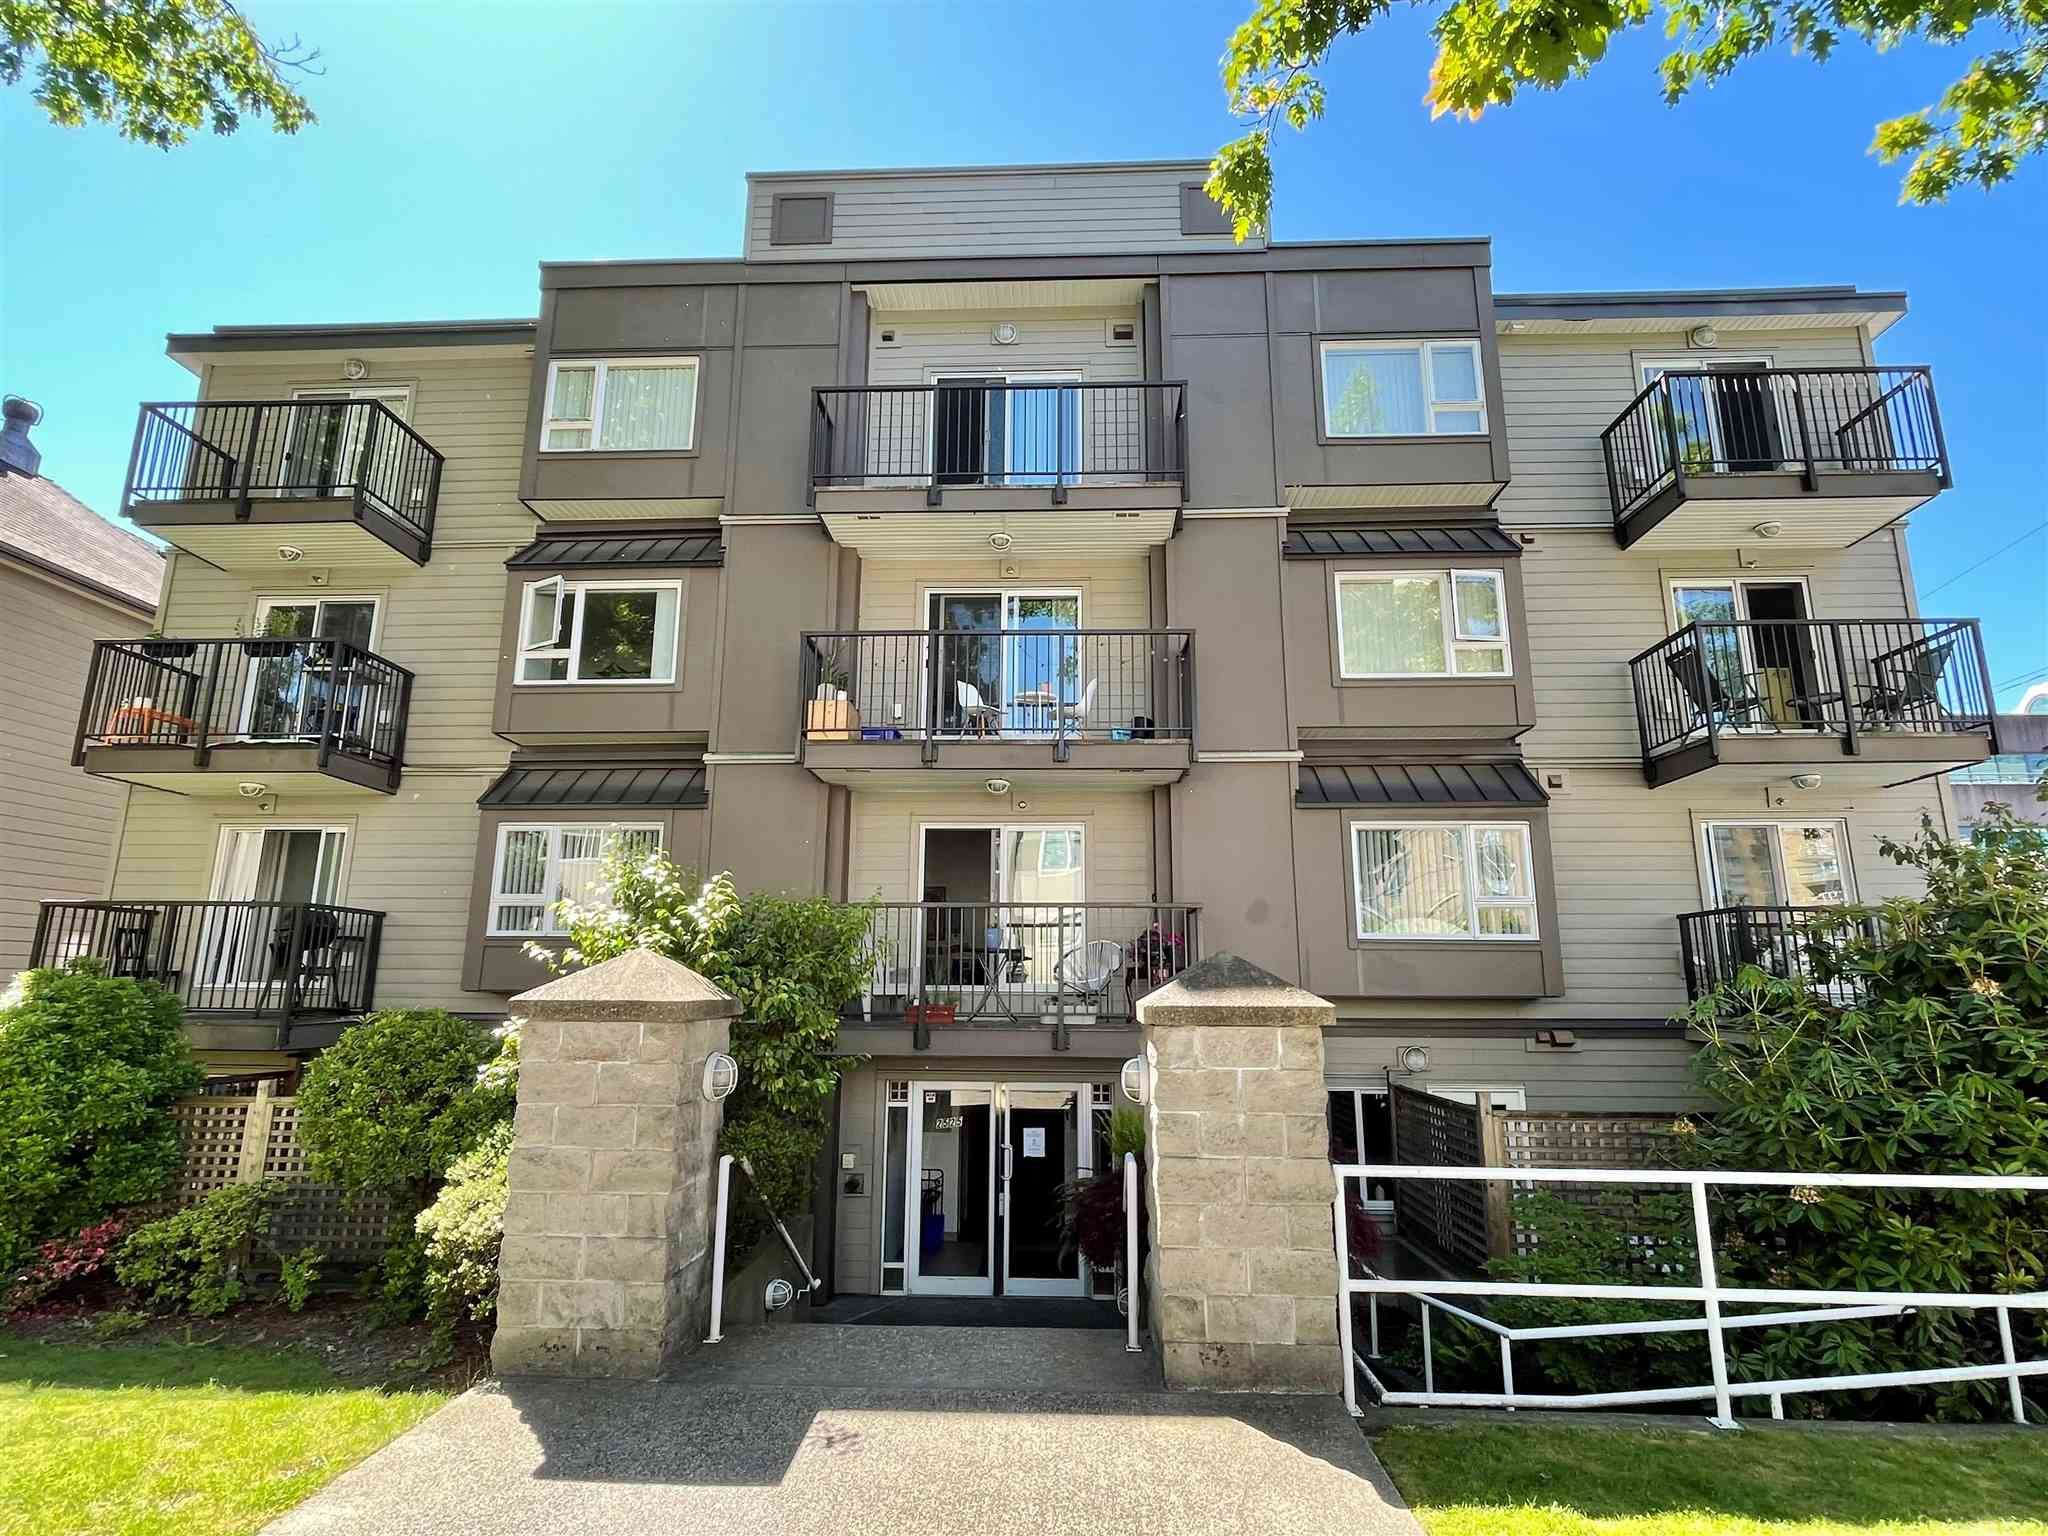 Main Photo: 2525 BIRCH Street in Vancouver: Fairview VW Multi-Family Commercial for sale (Vancouver West)  : MLS®# C8039632